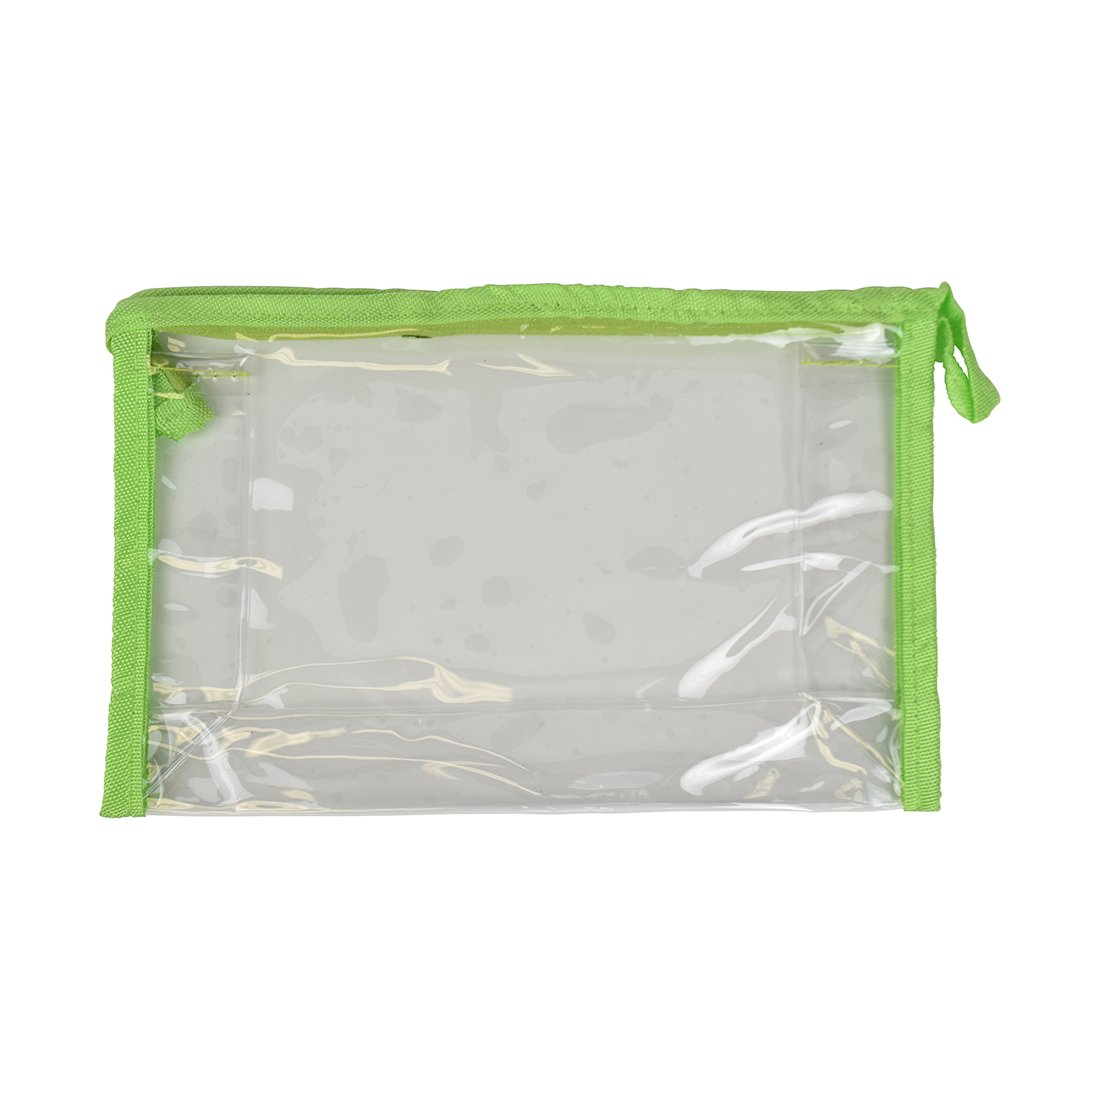 Clear Cosmetic Bag Travel Pouch Pencil Case With Green Trim